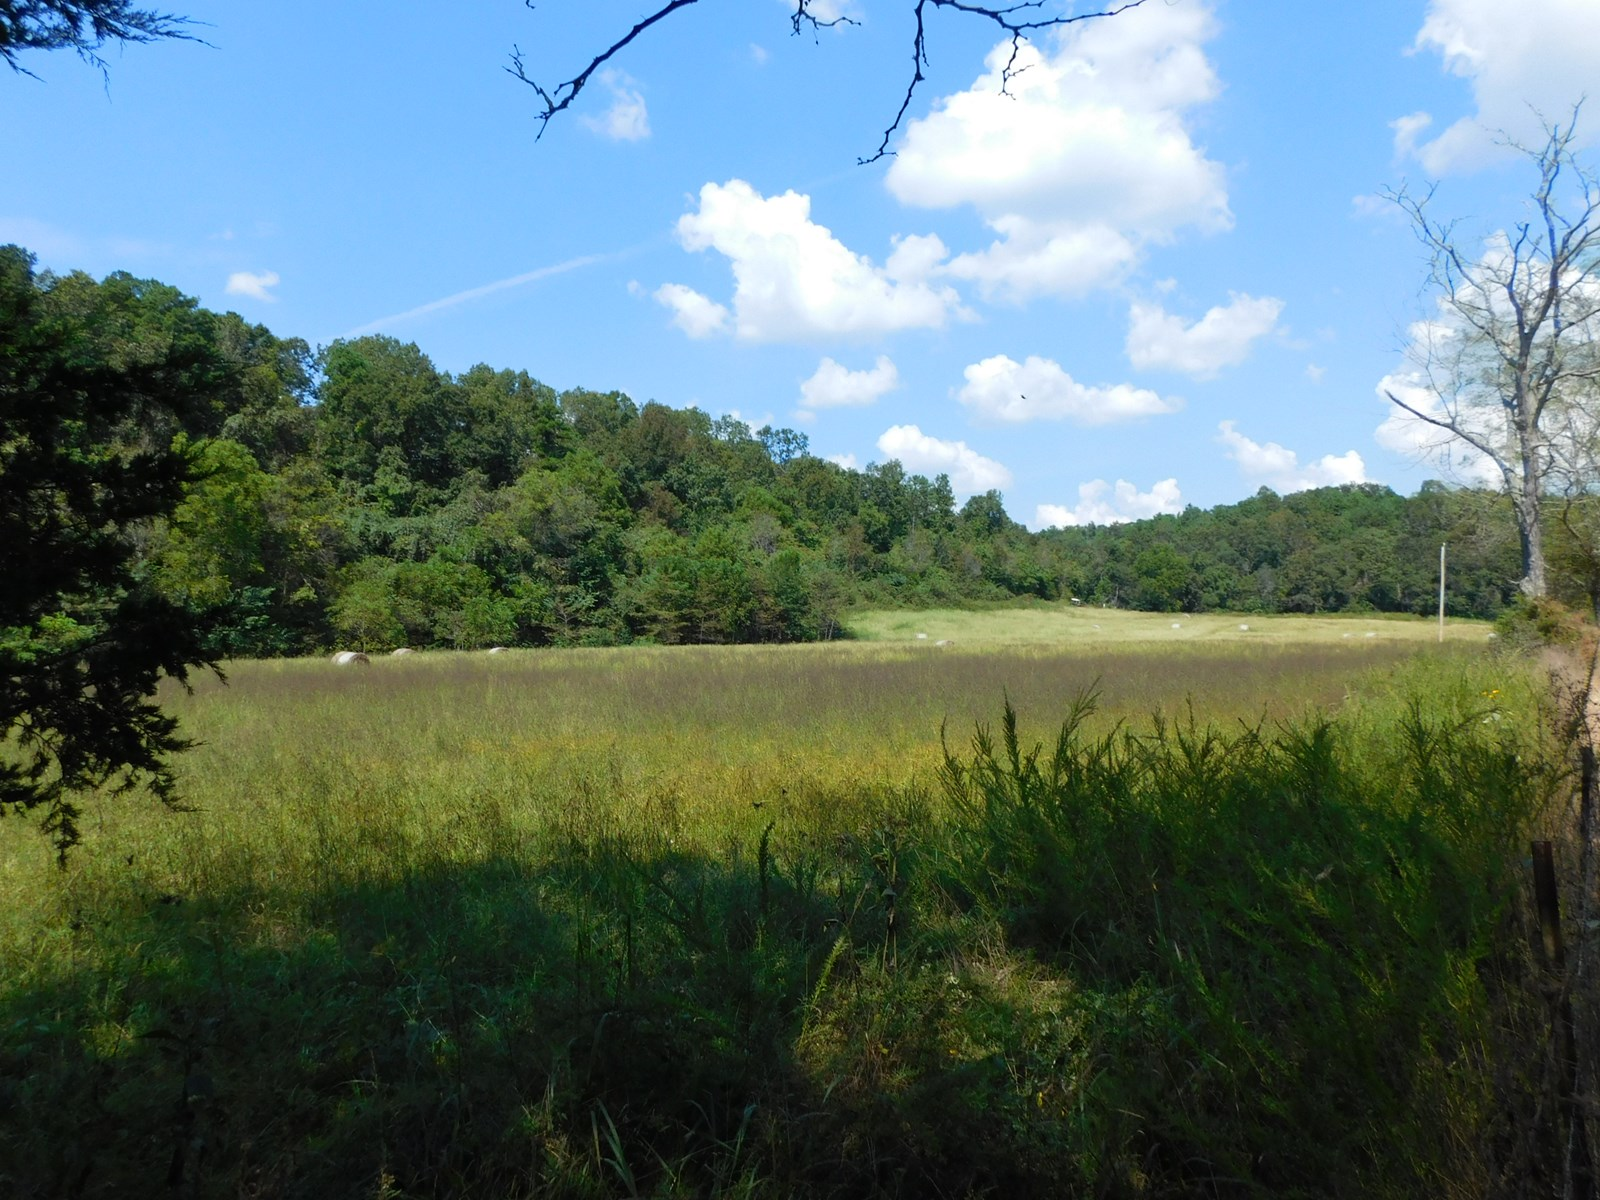 Land for Sale in the Southern MO Ozarks